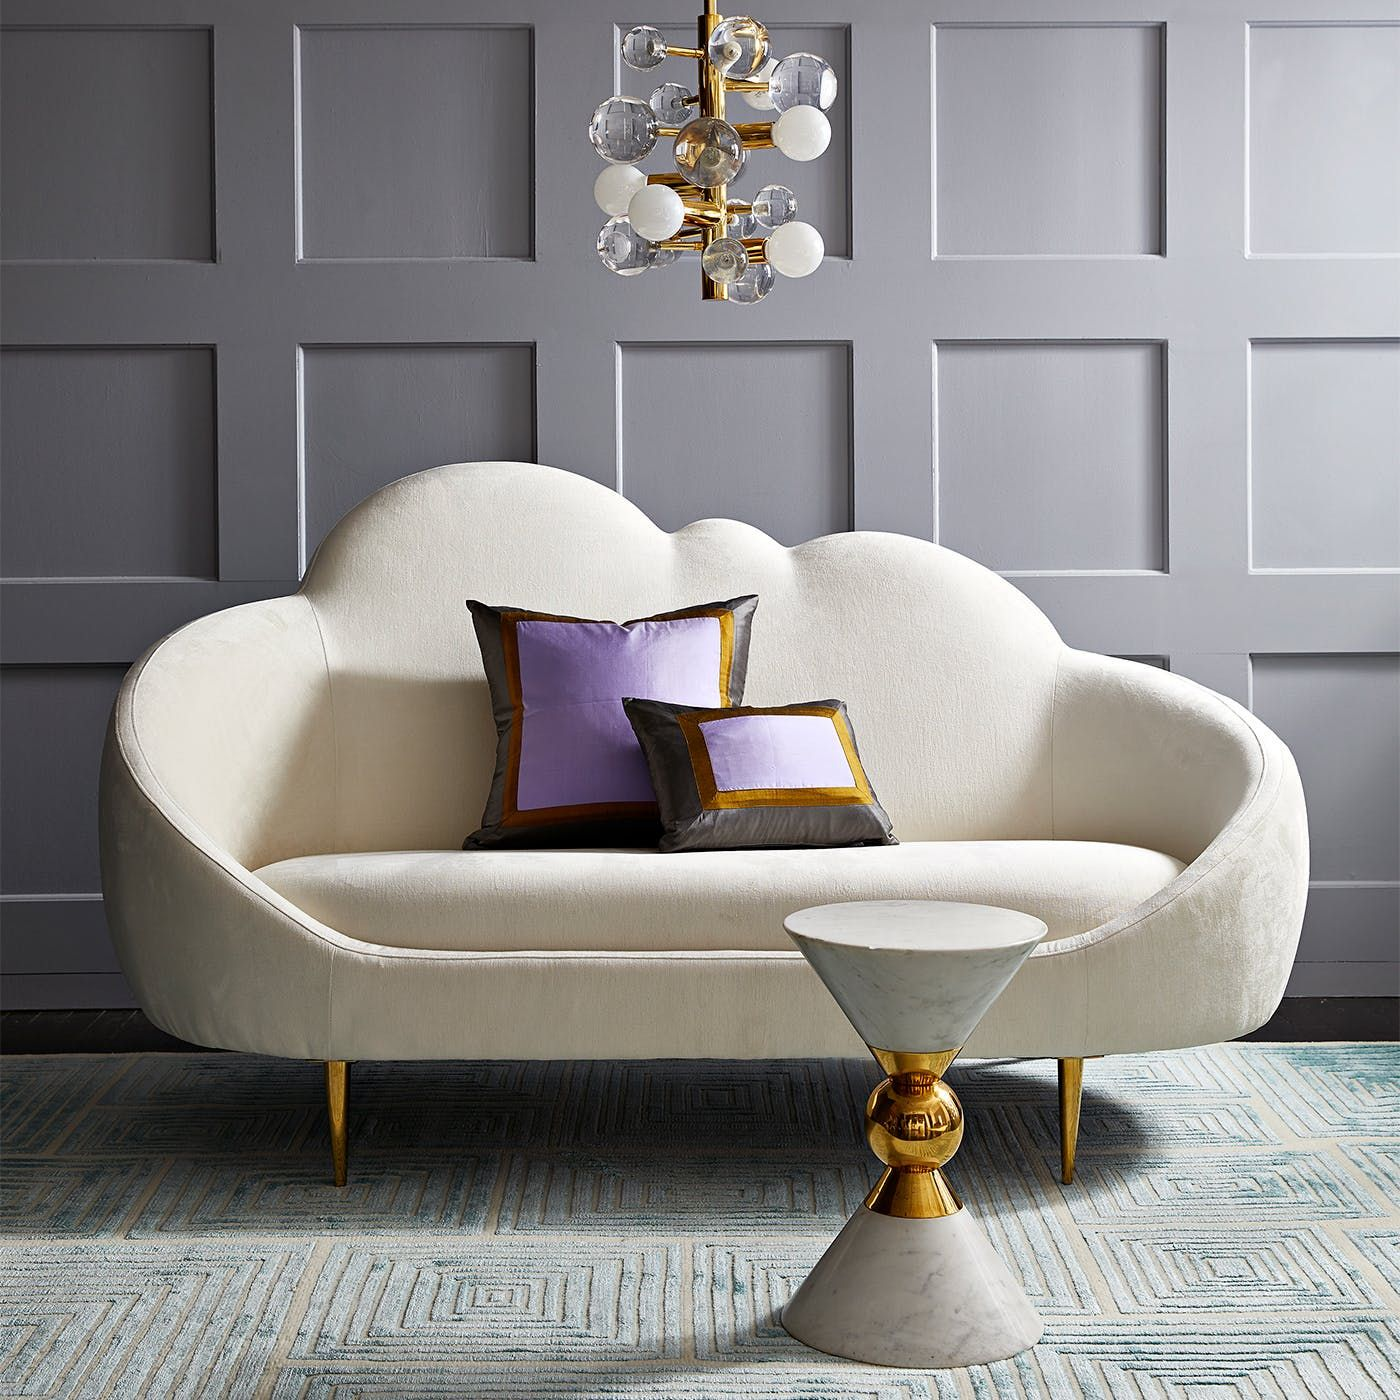 Lounge Designer Furniture: Jonathan Adler's Spring Catalog Is Here & Full Of Modern